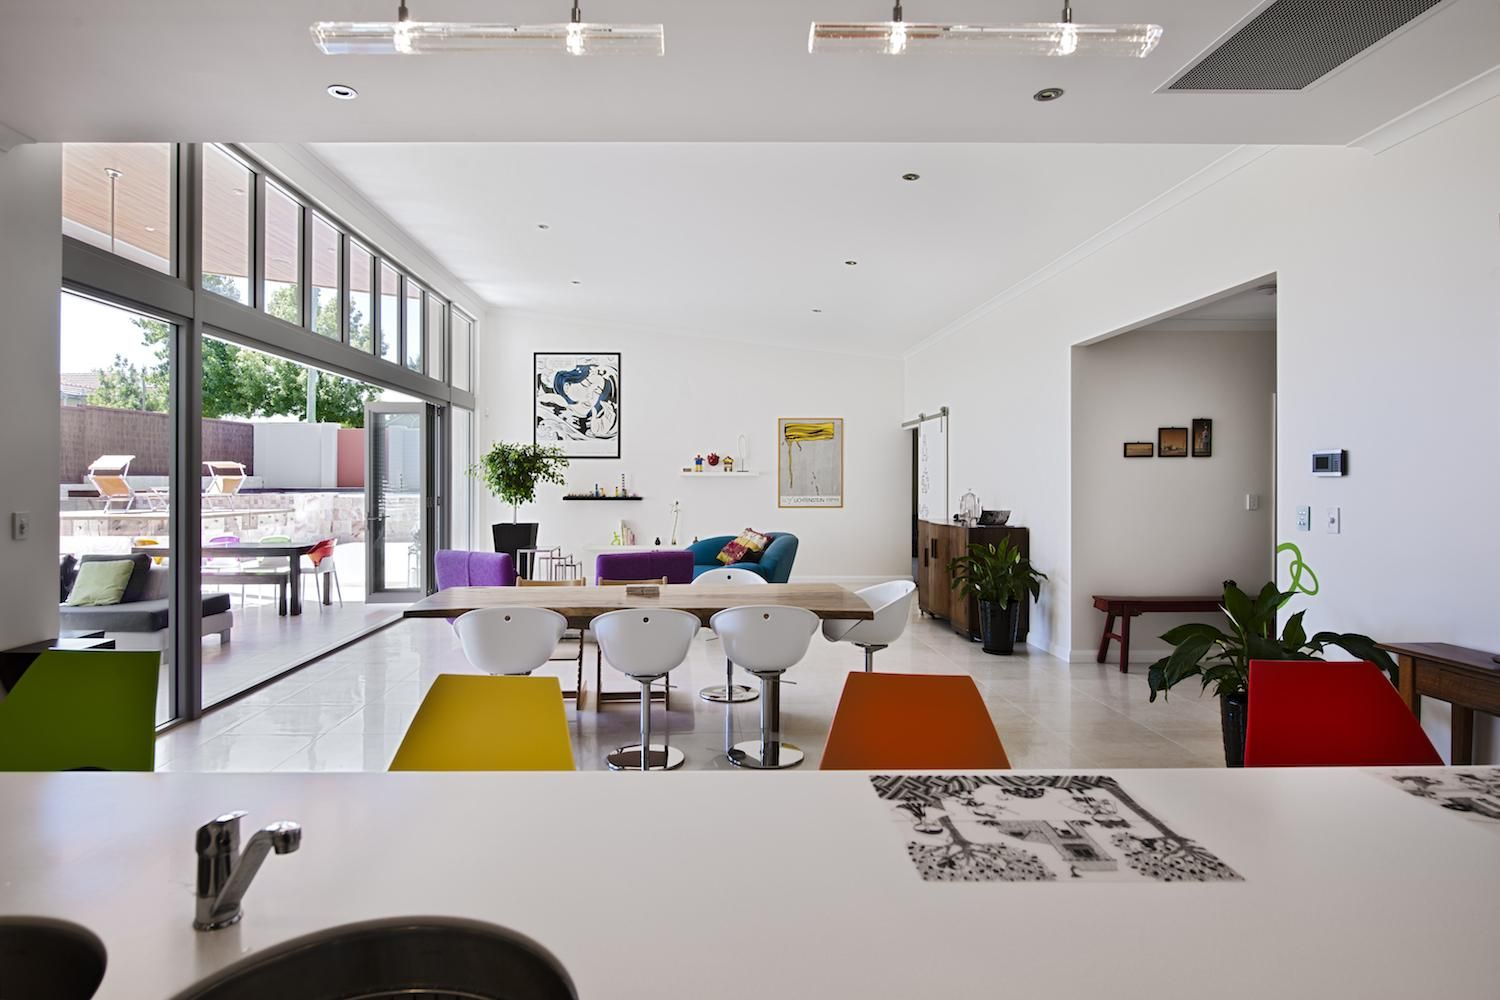 This custom designed super funky single storey family home was